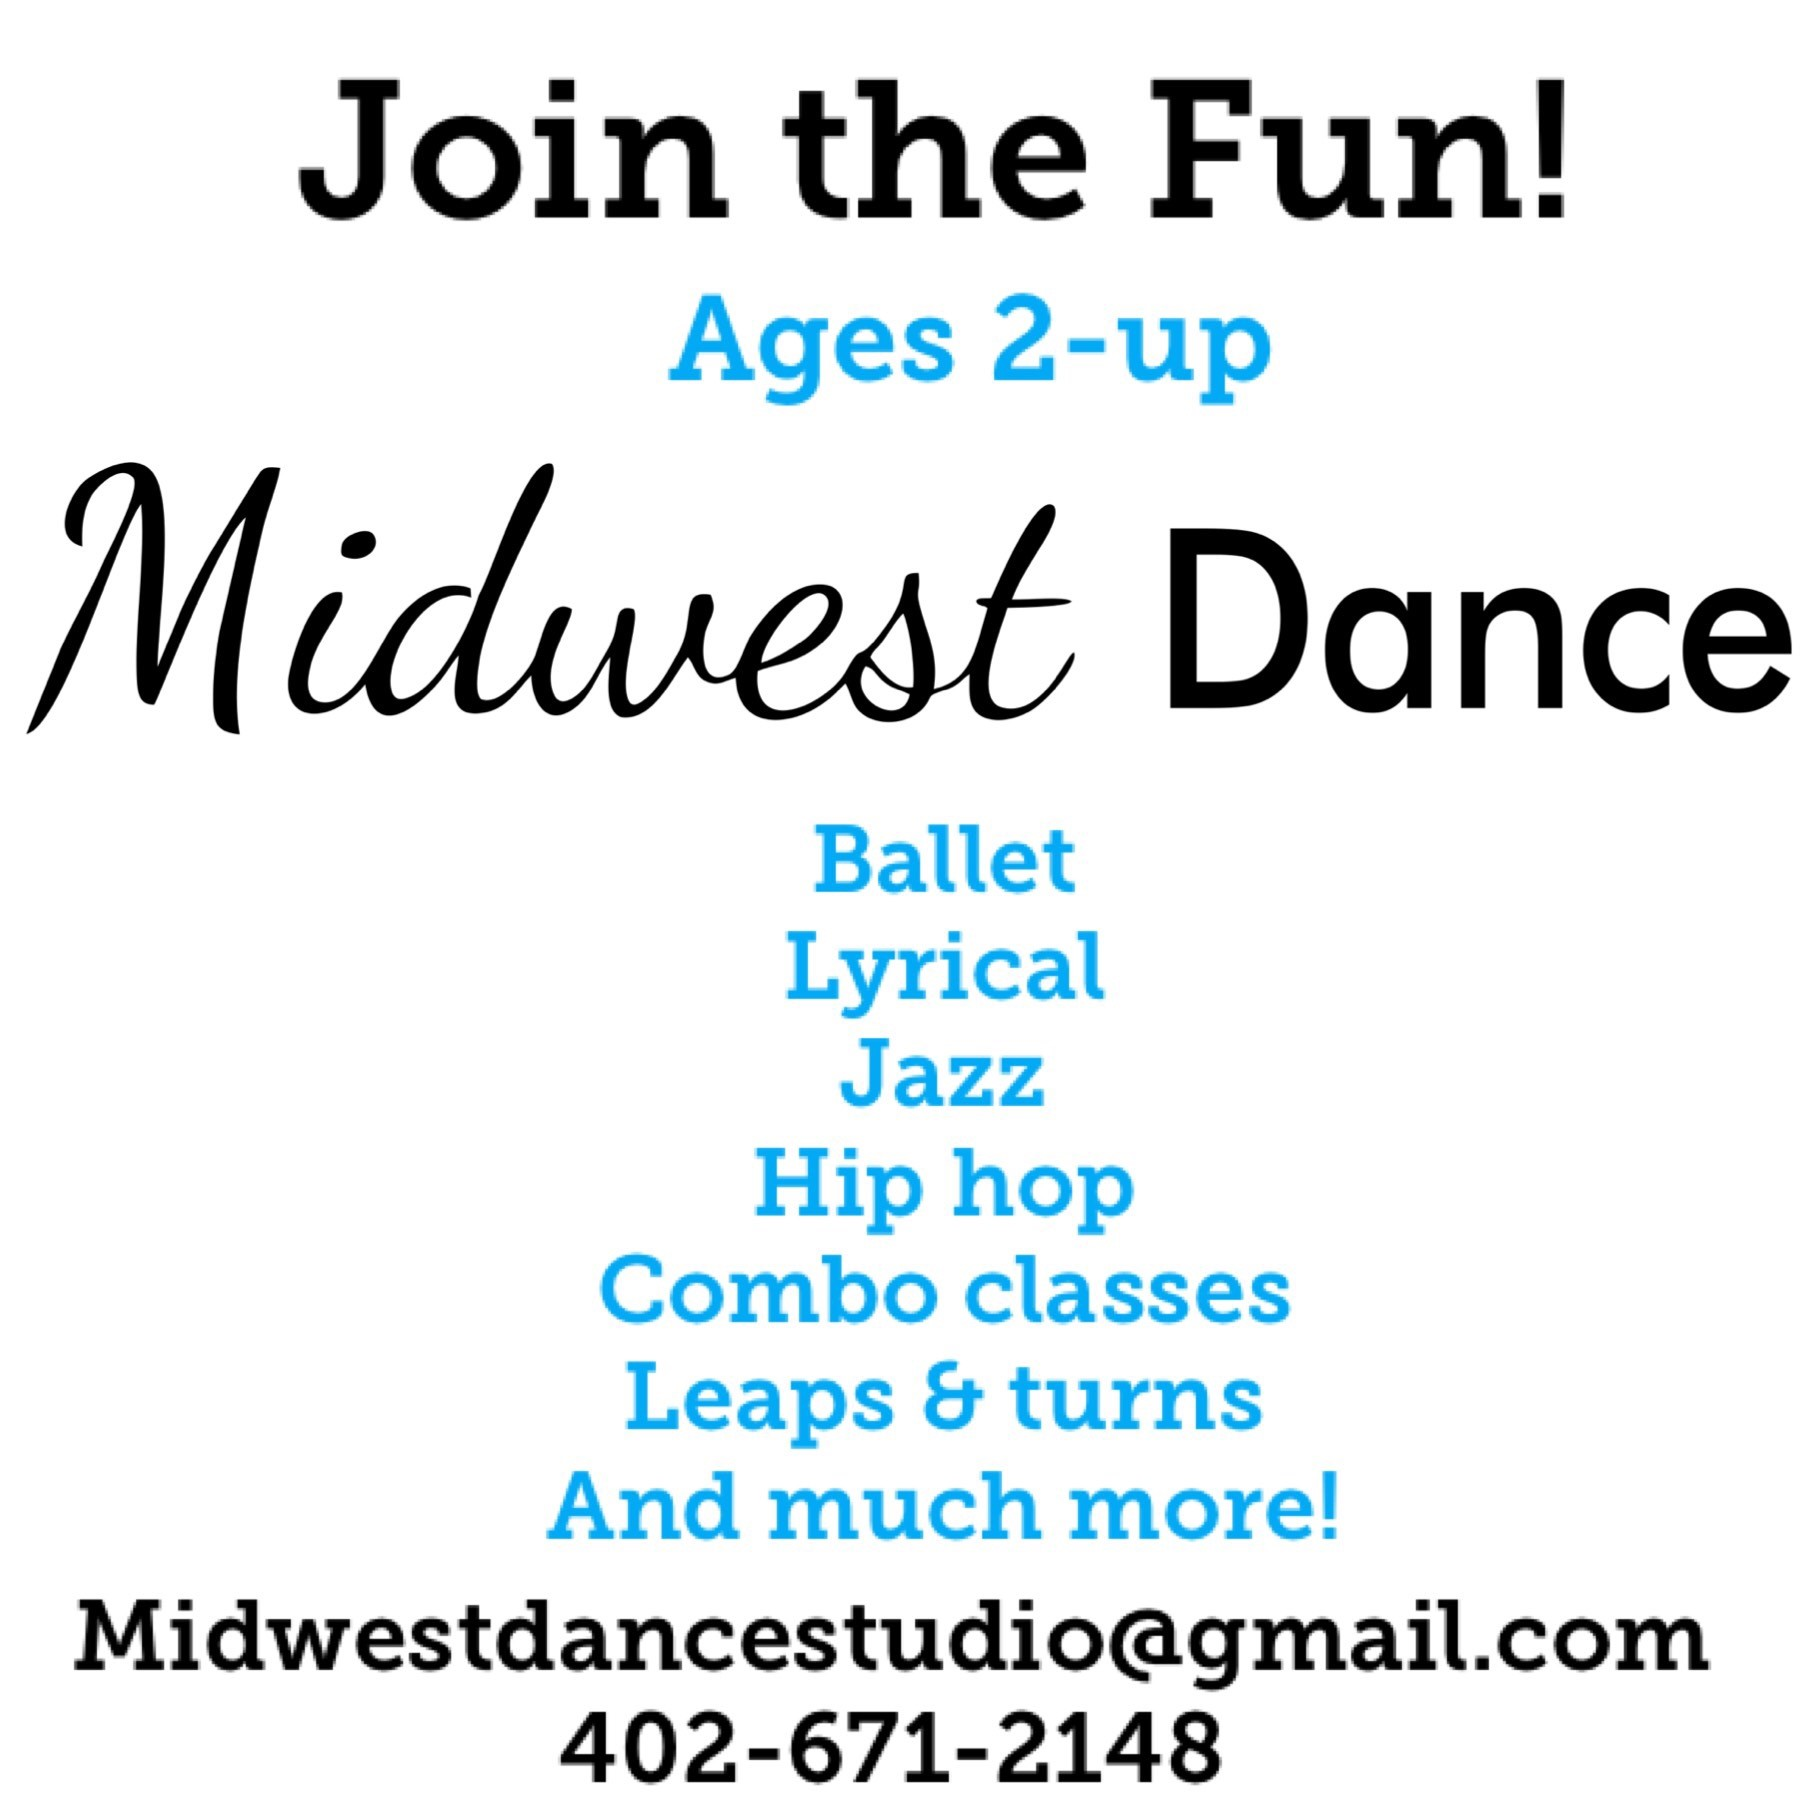 Midwest Dance - Join the Fun!